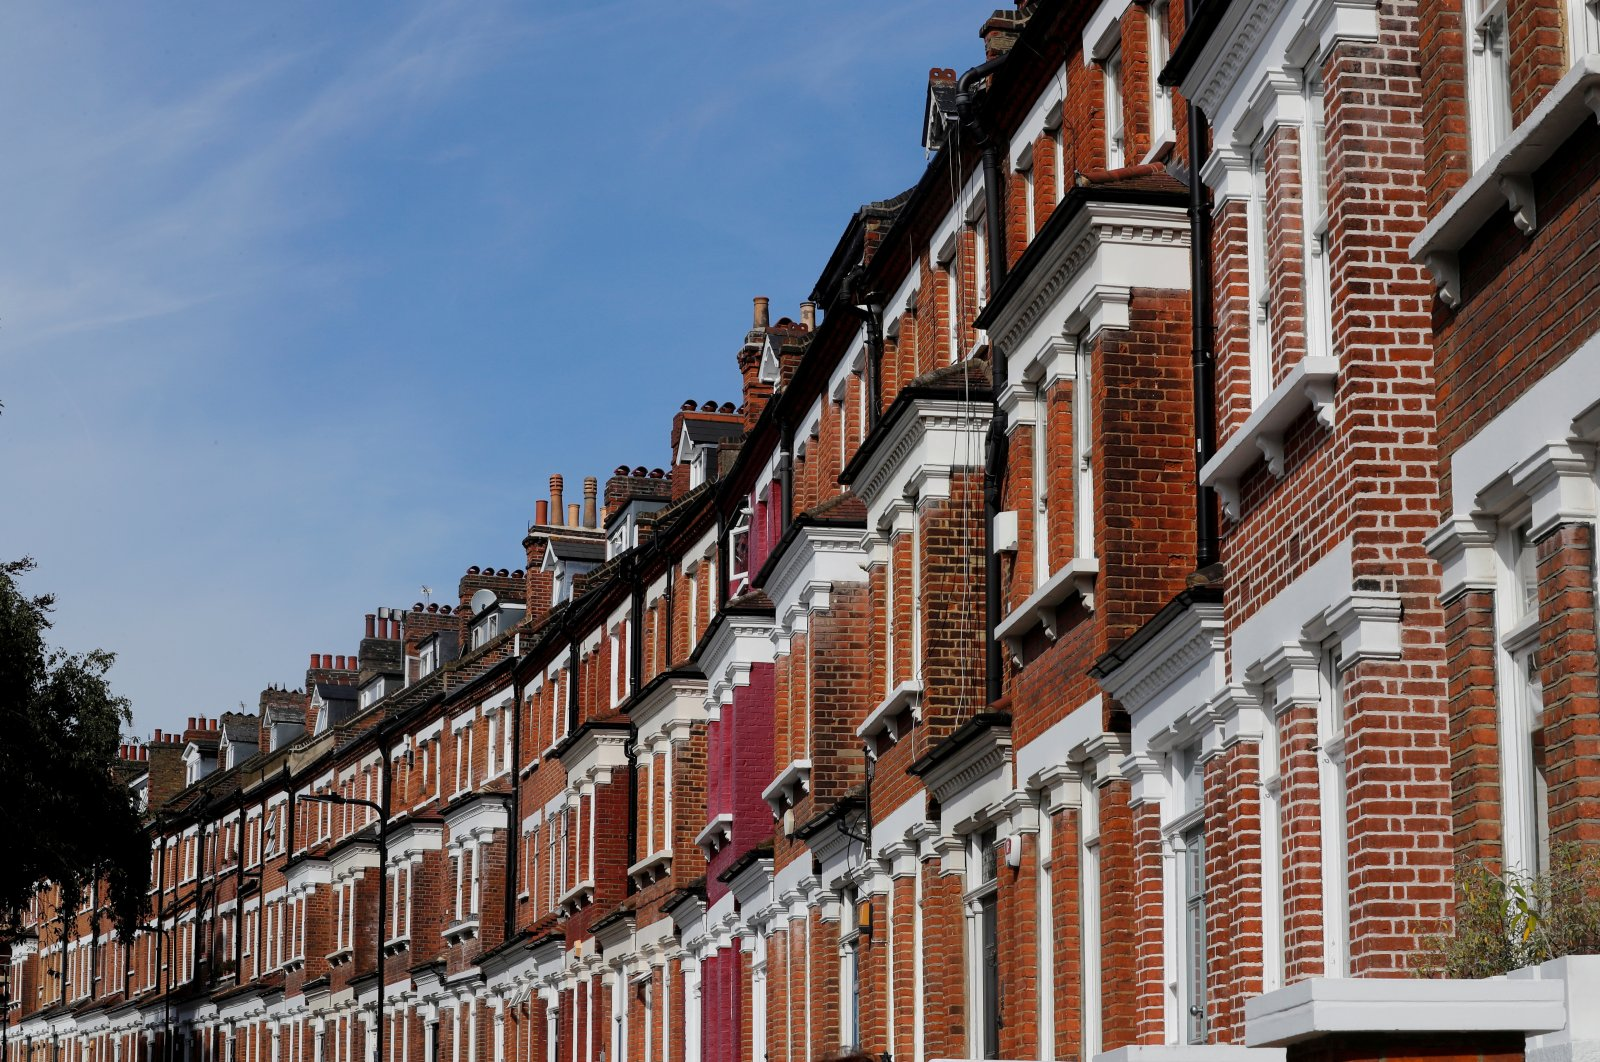 Terraced houses are seen in Primrose Hill, London, U.K., Sept. 24, 2017. (Reuters Photo)